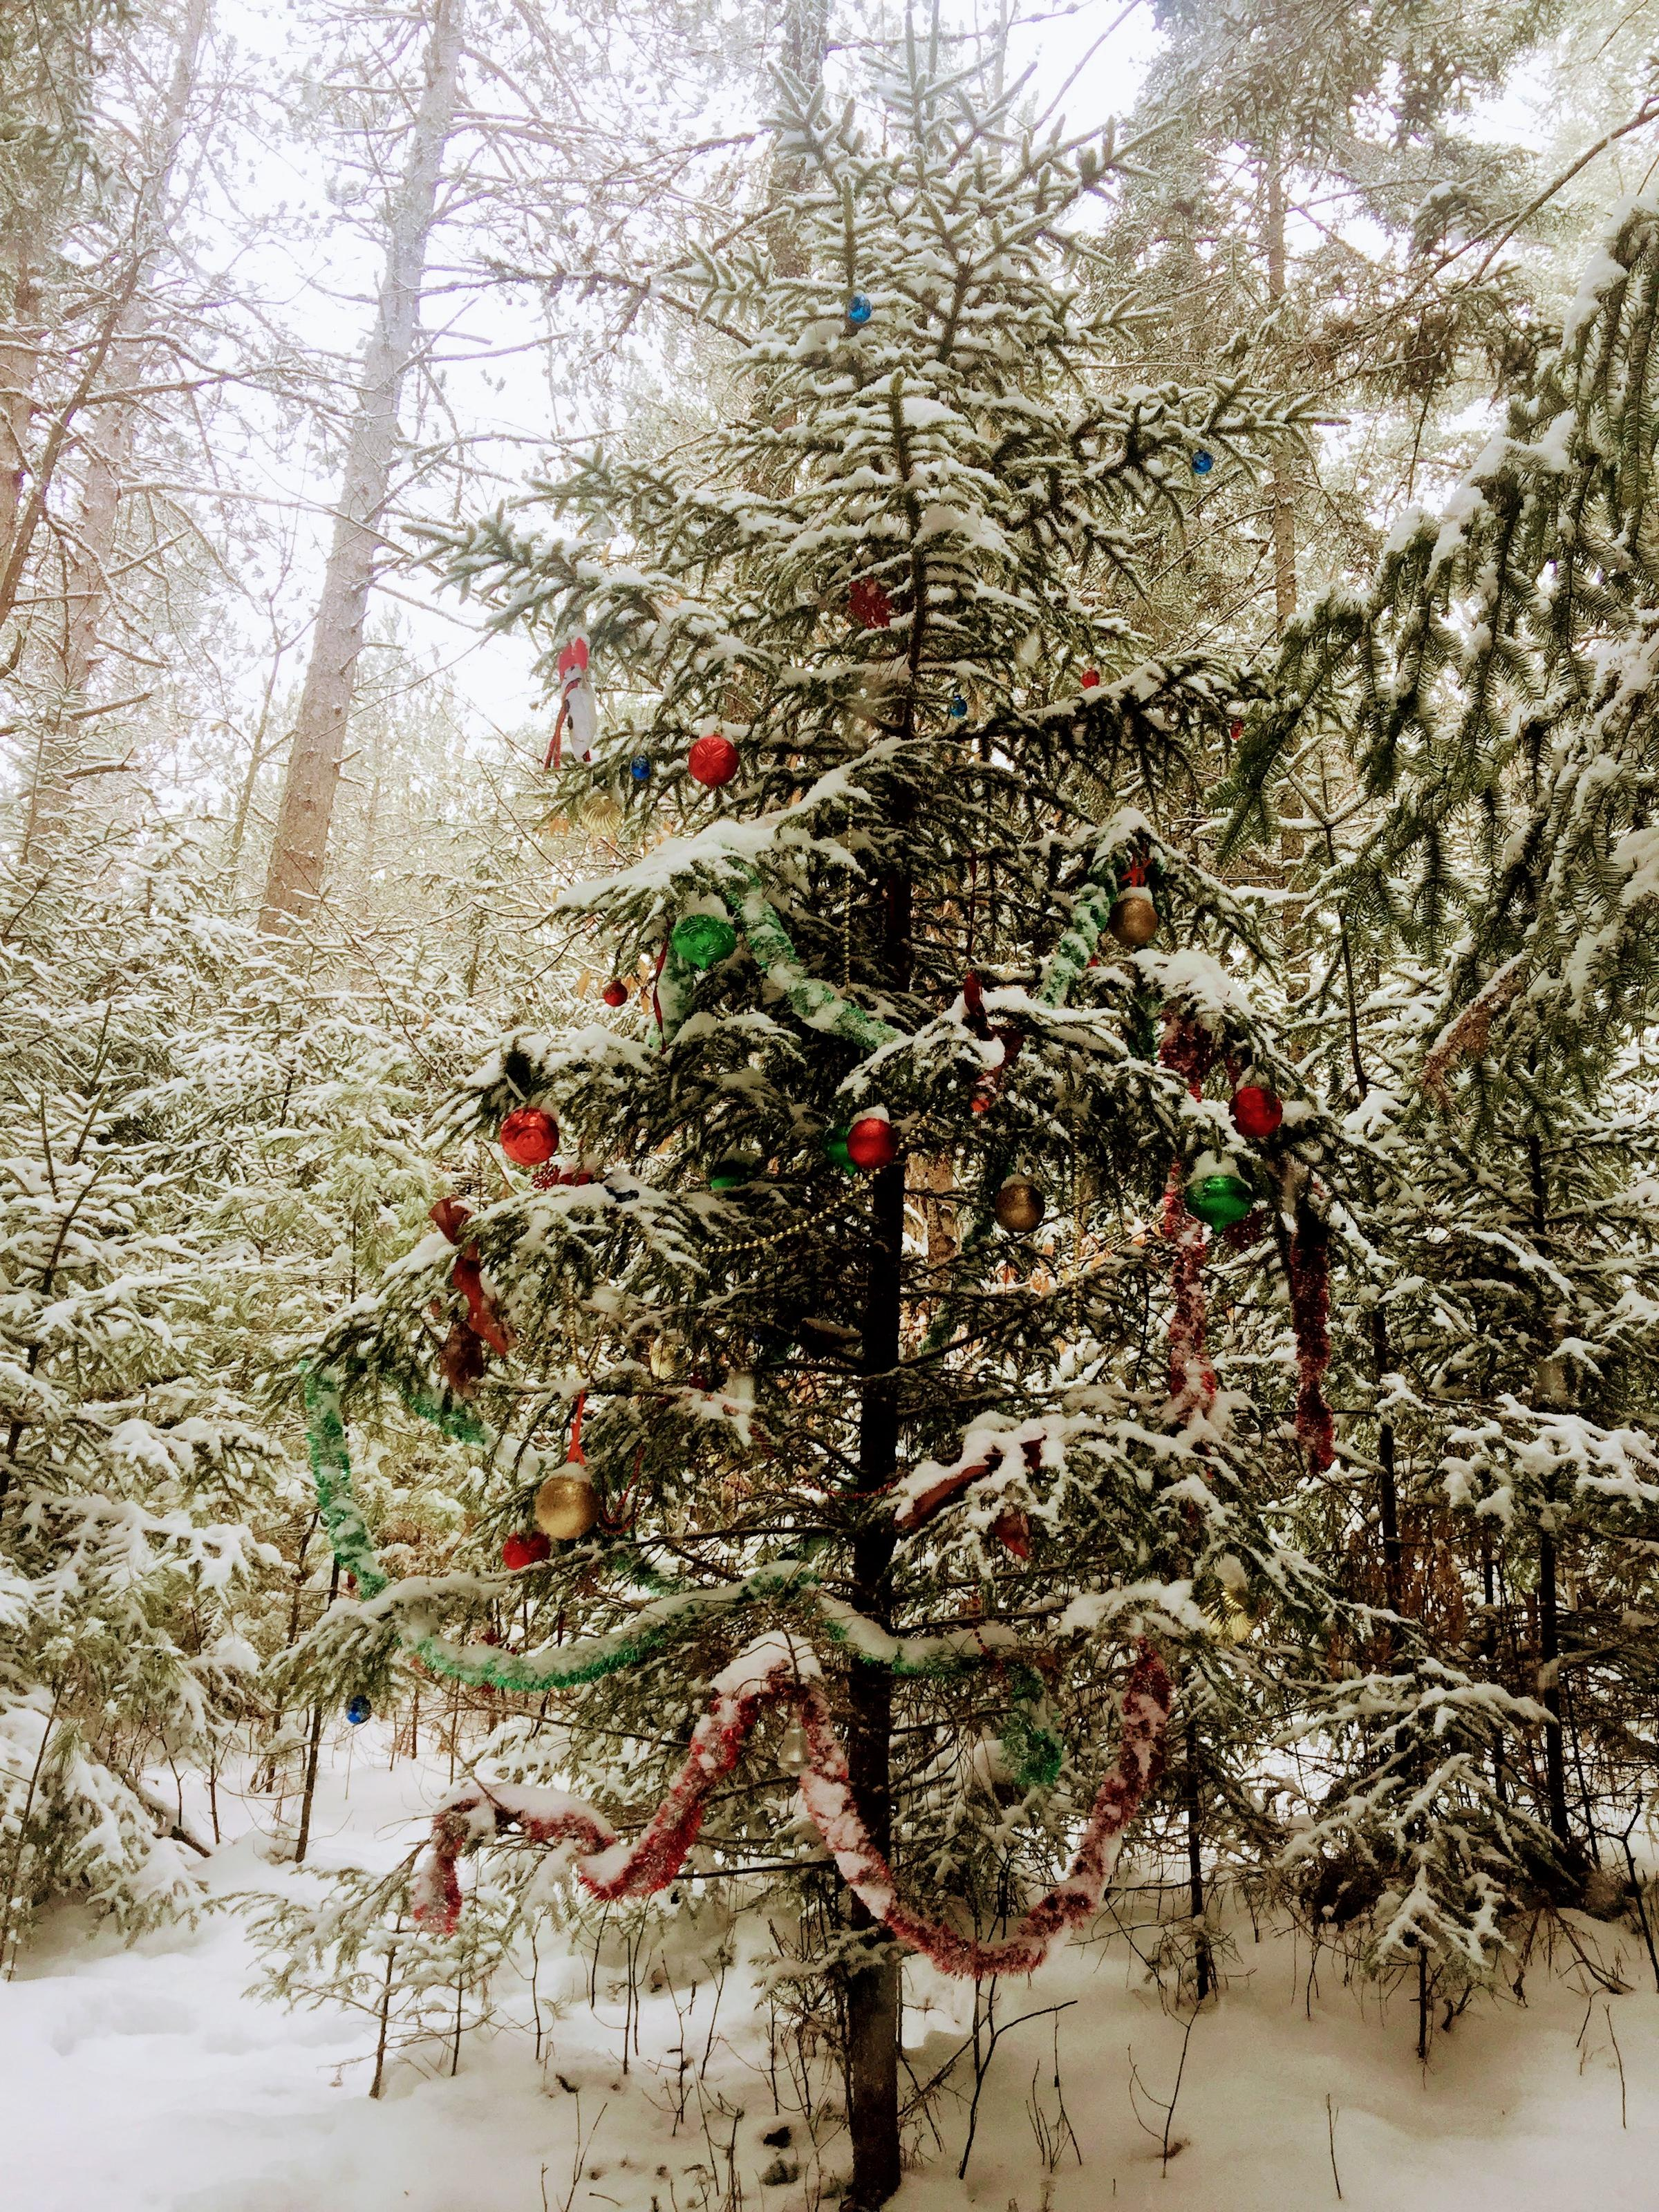 People Decorating For Christmas in new hampshire, decorating christmas trees in the woods is a